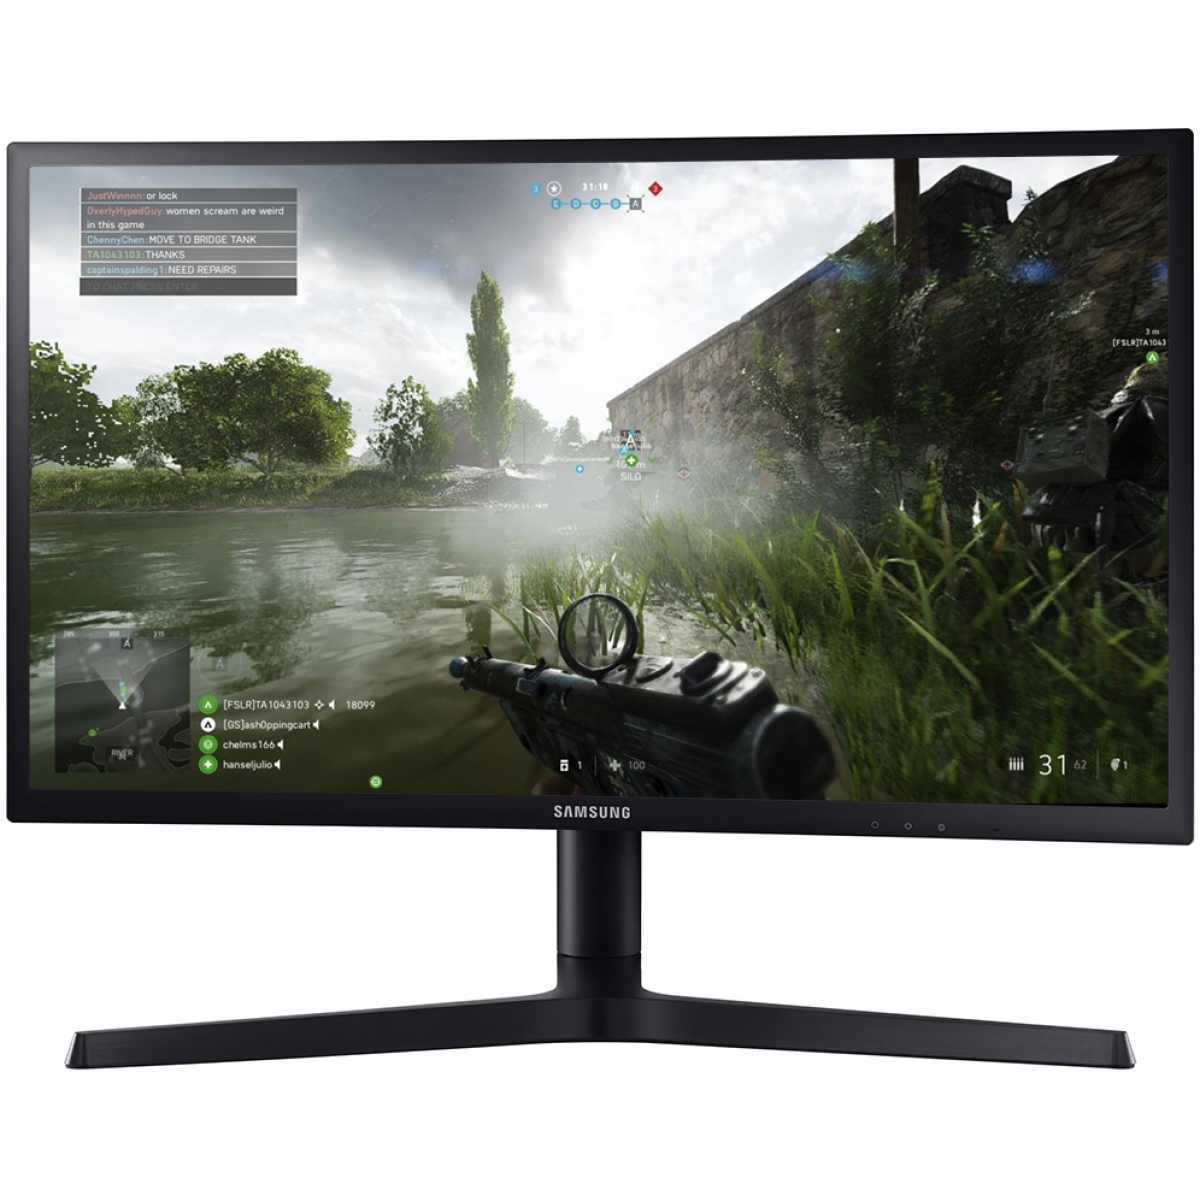 Monitor Gamer Samsung 23.5 Pol, Full HD, 144HZ, 1ms, LC24FG73FQLXZD